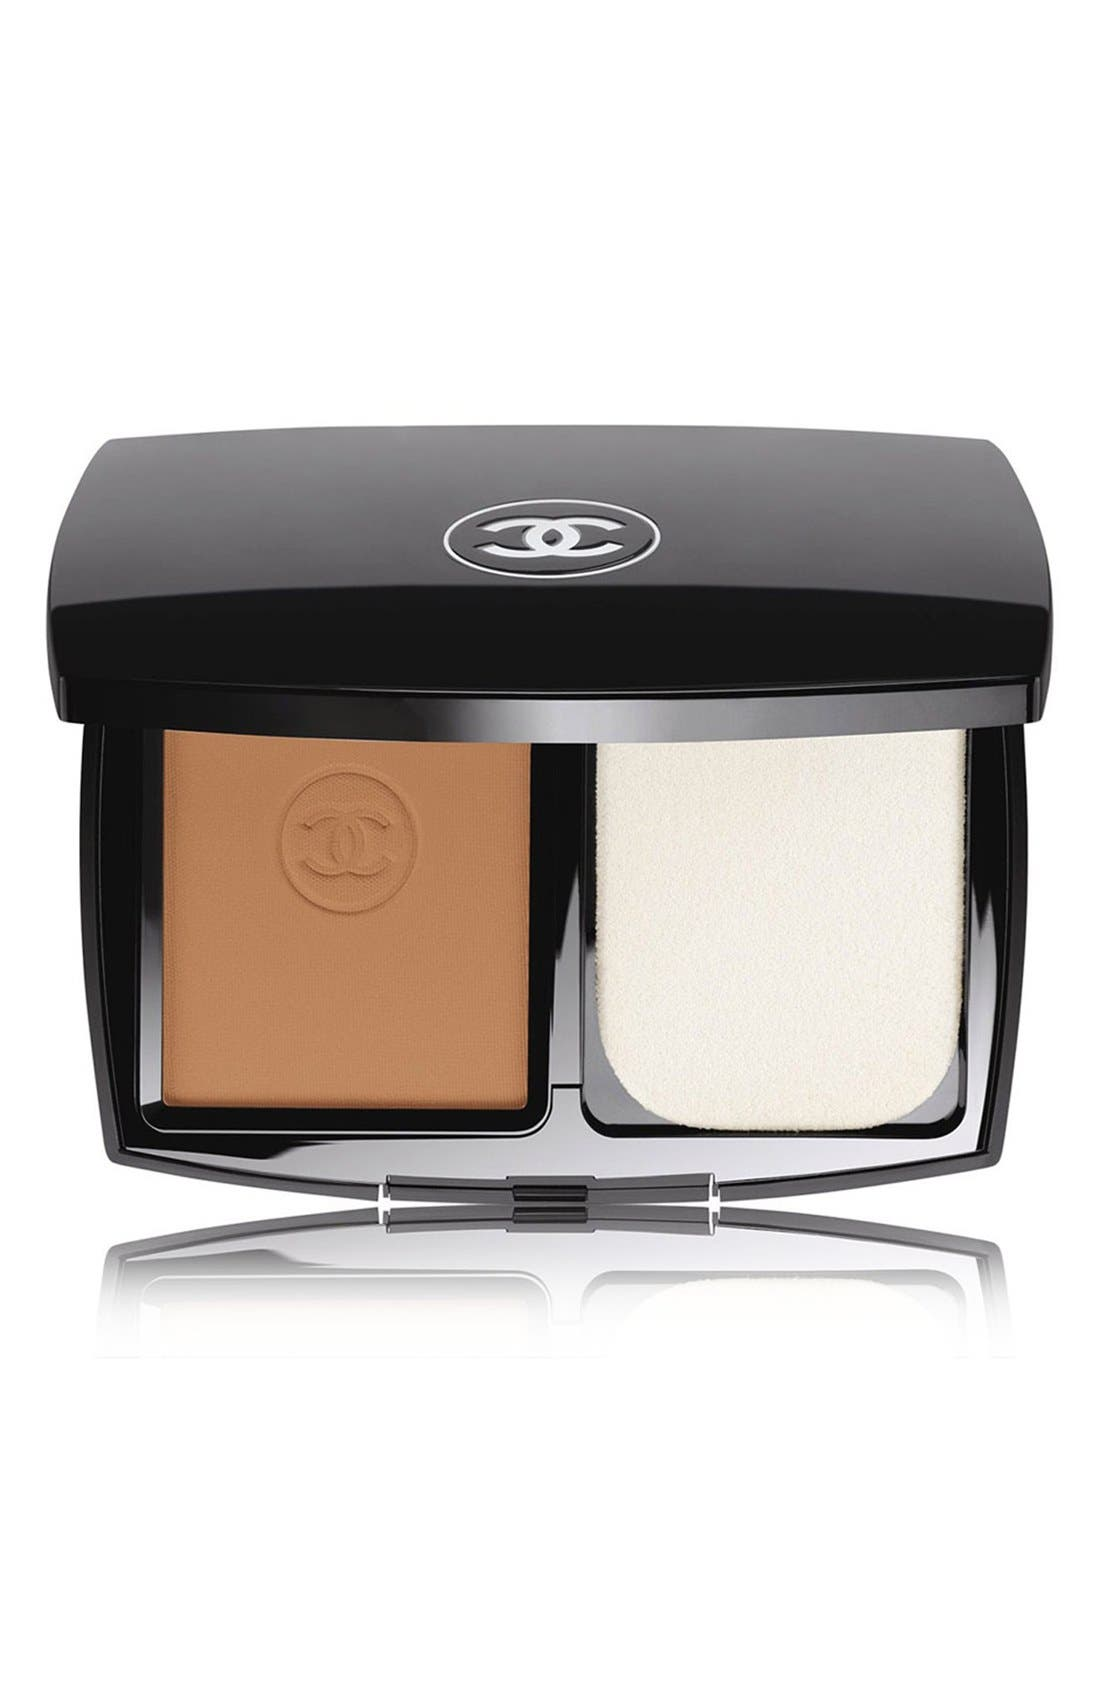 CHANEL LE TEINT ULTRA TENUE<br />Ultrawear Flawless Compact Foundation Broad Spectrum SPF 15 Sunscreen, Main, color, 91 CARAMEL